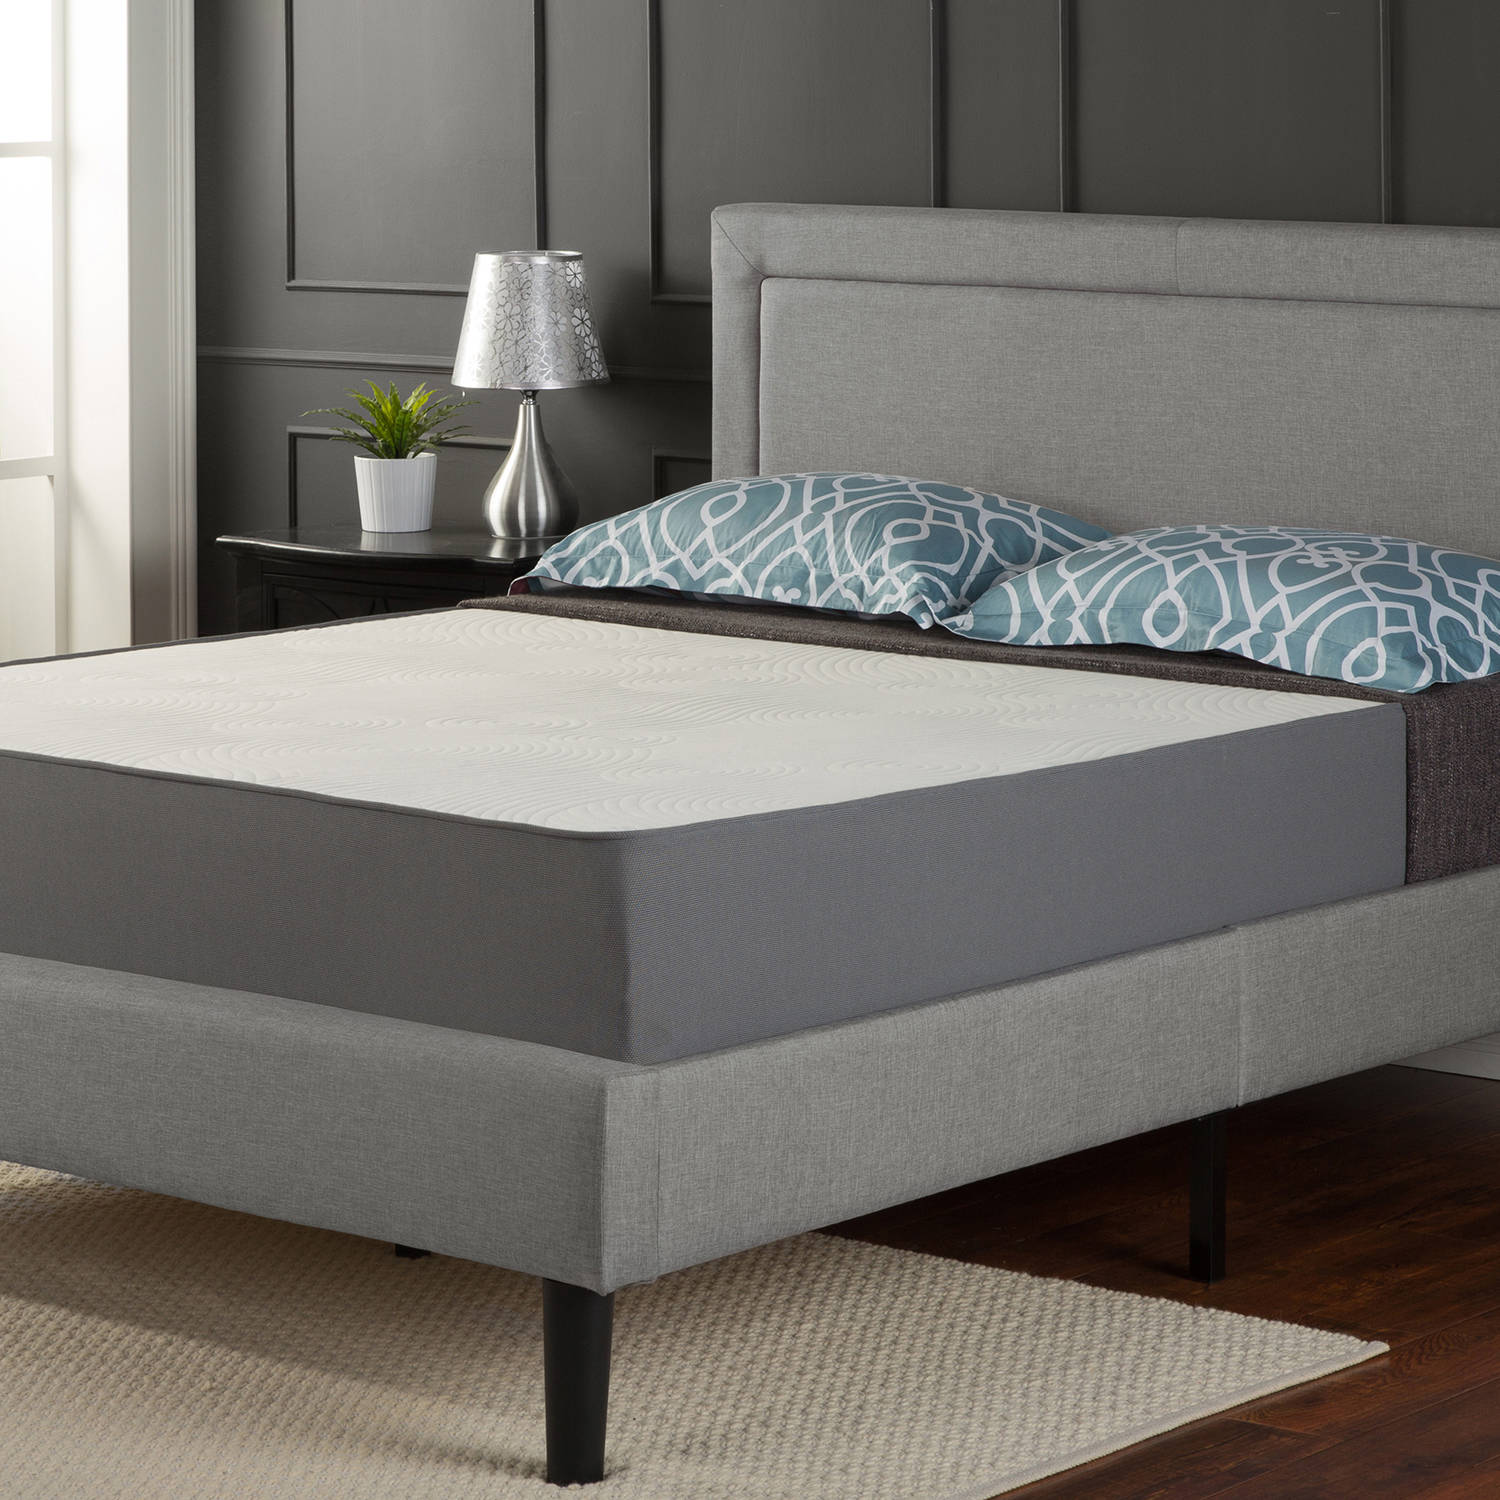 "Zinus 10"" Memory Foam Perfect Response Mattress, Multiple Sizes"